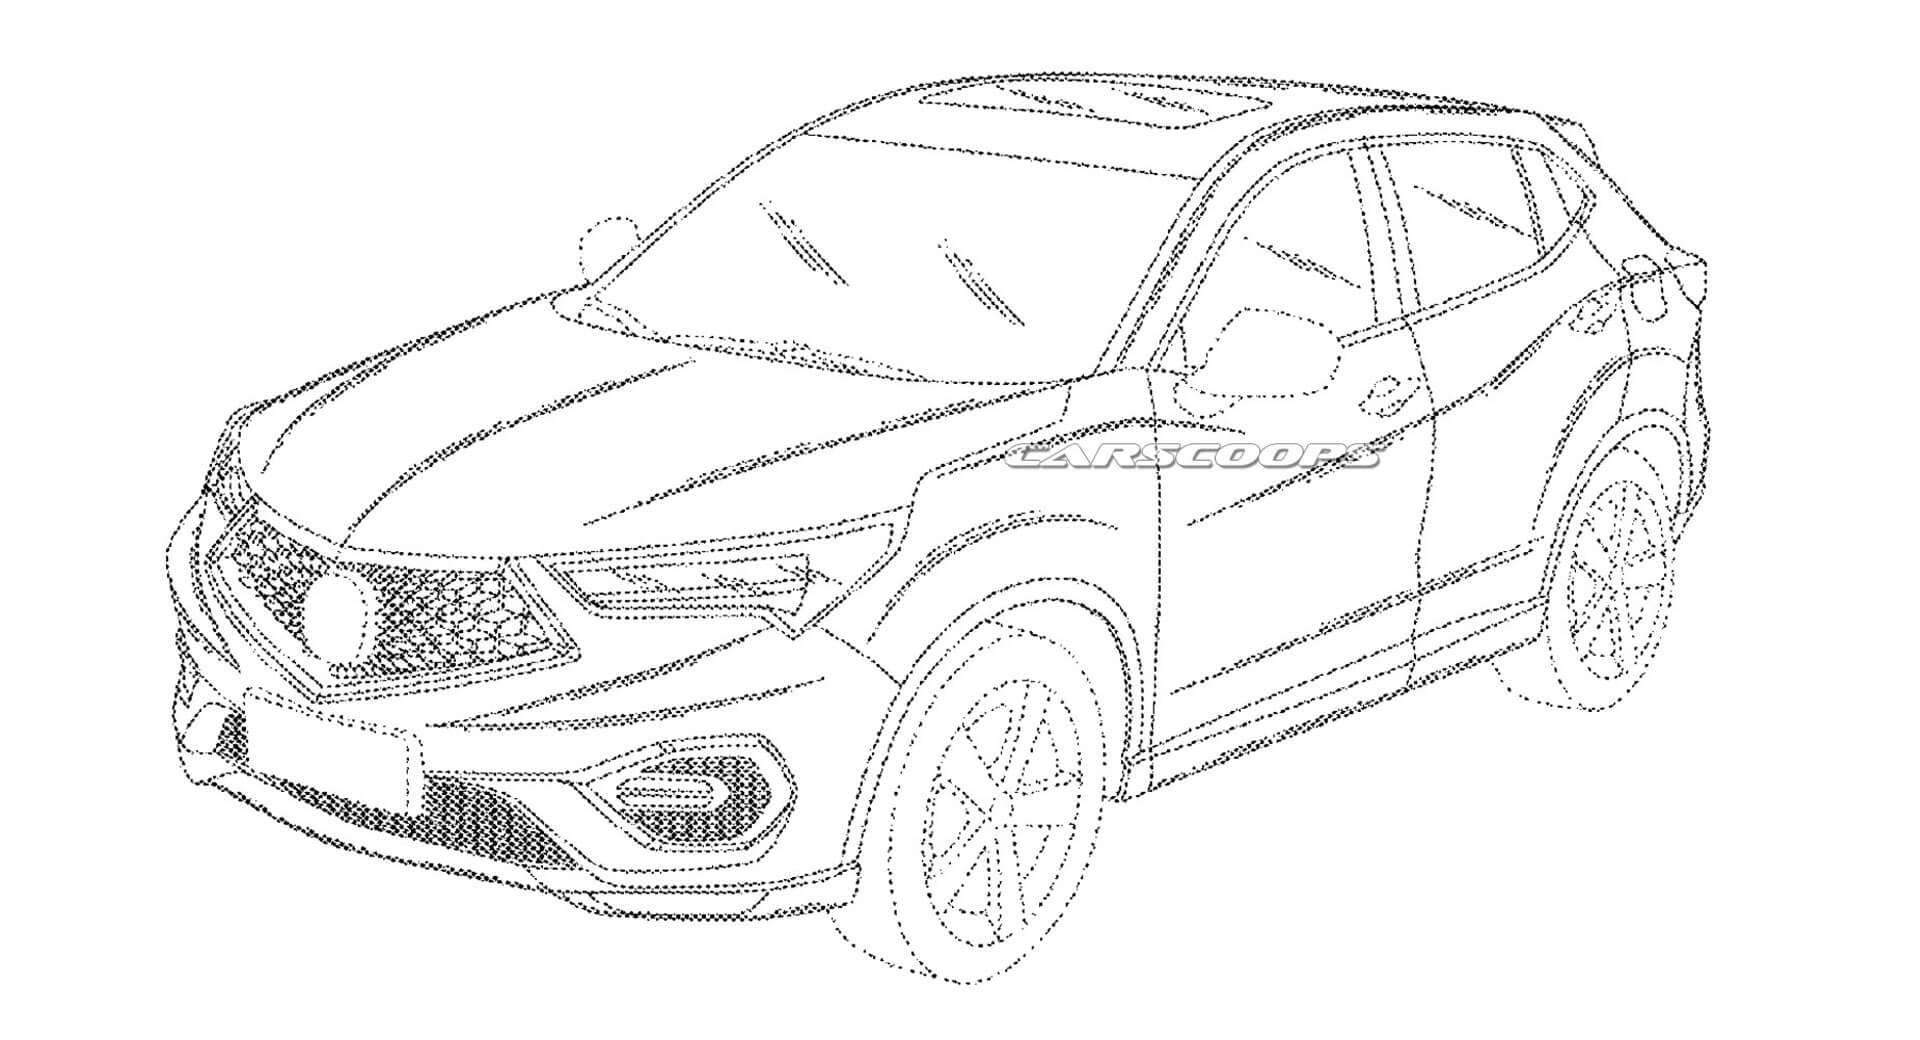 Acura CDX Hits The Patent Office As Company Denies Plan